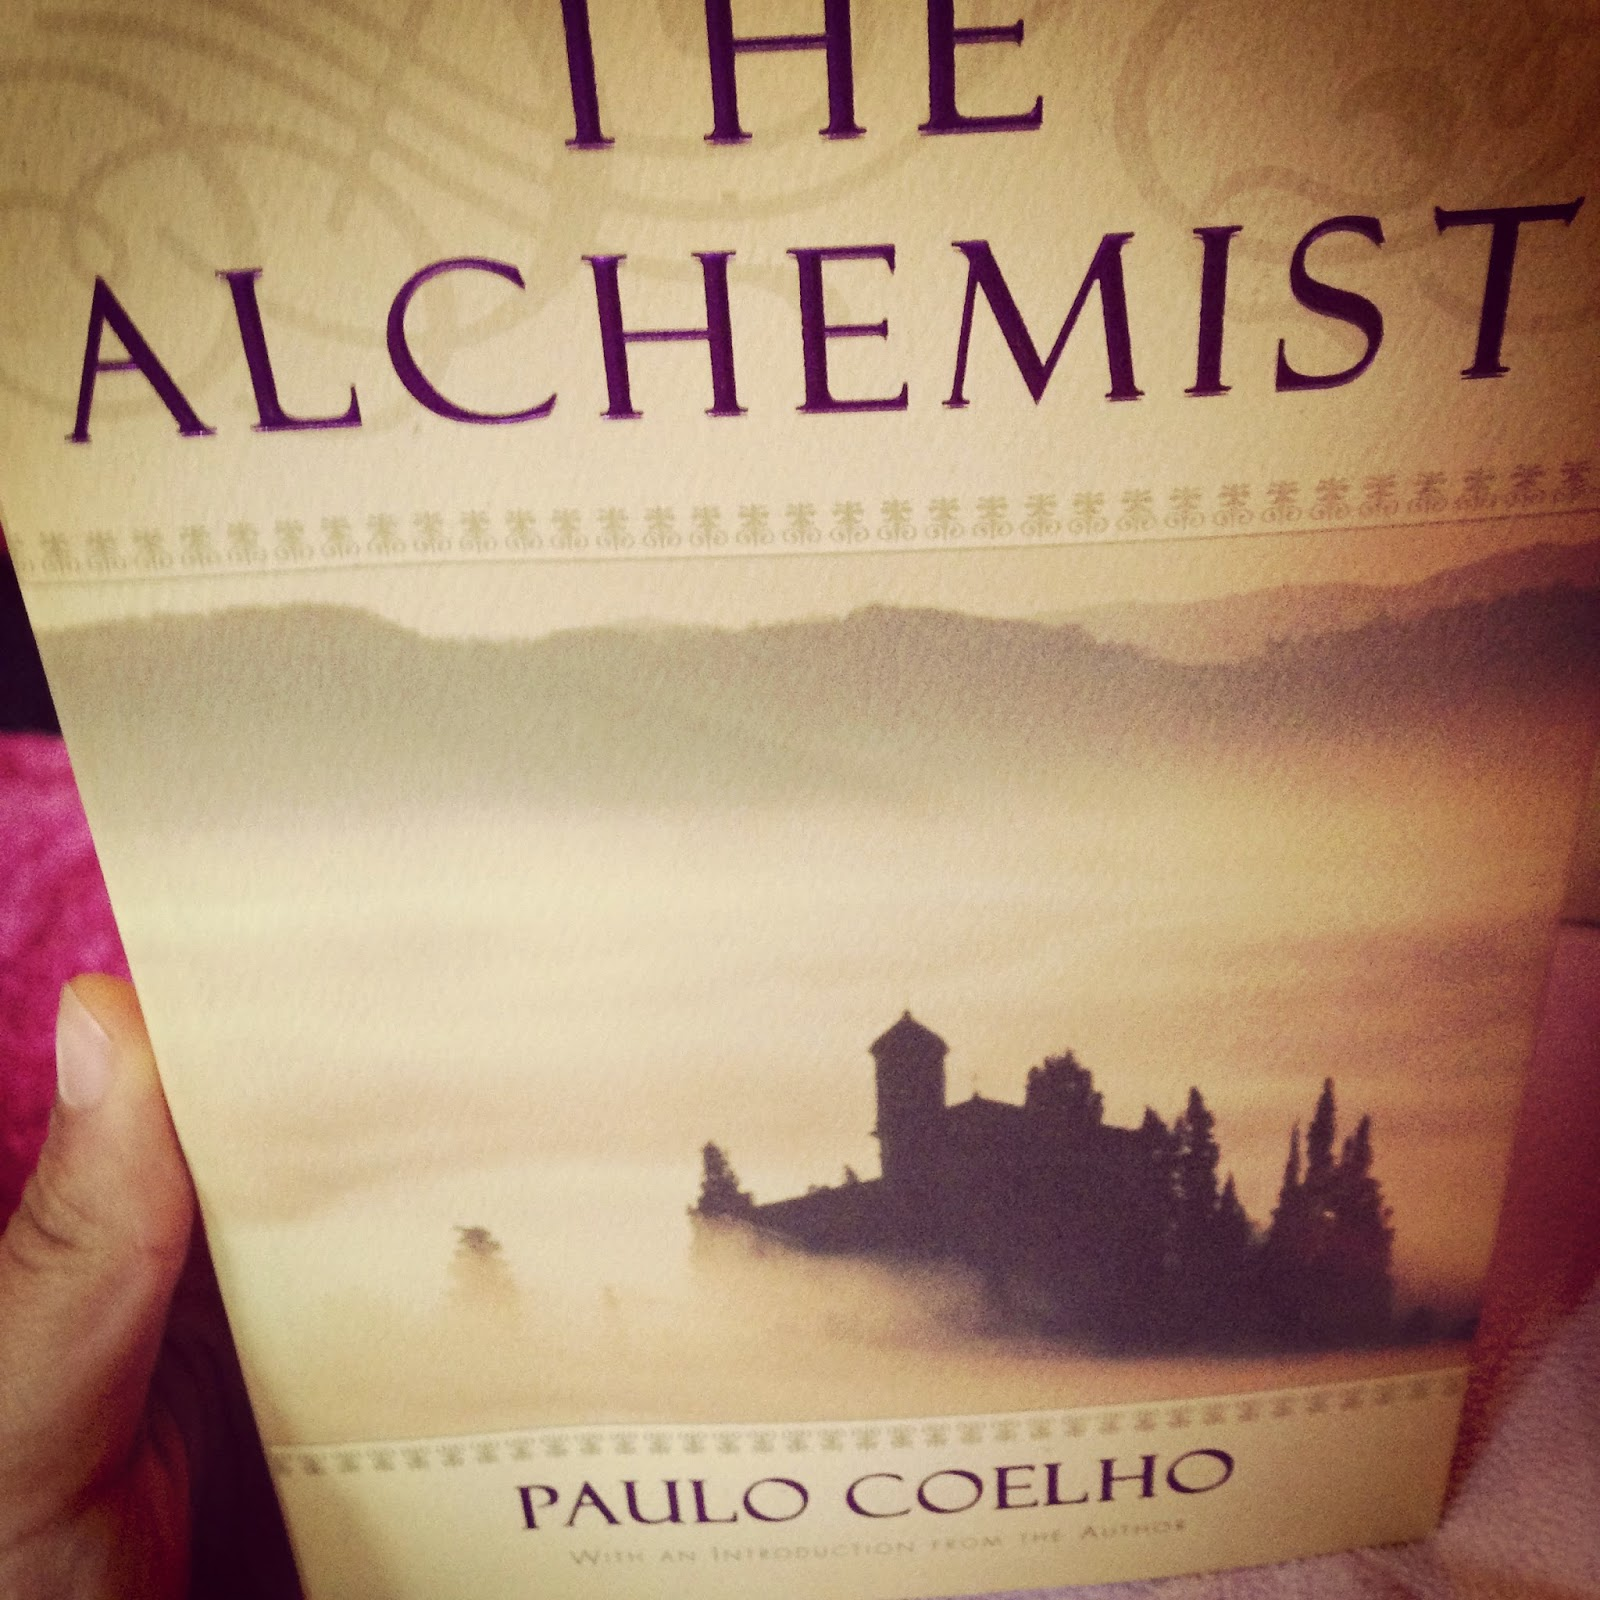 welcome to my den ❤ i m done reading the heart opening book the alchemist by paulo coelho after hearing many great things about this popular novel i decided to buy it after